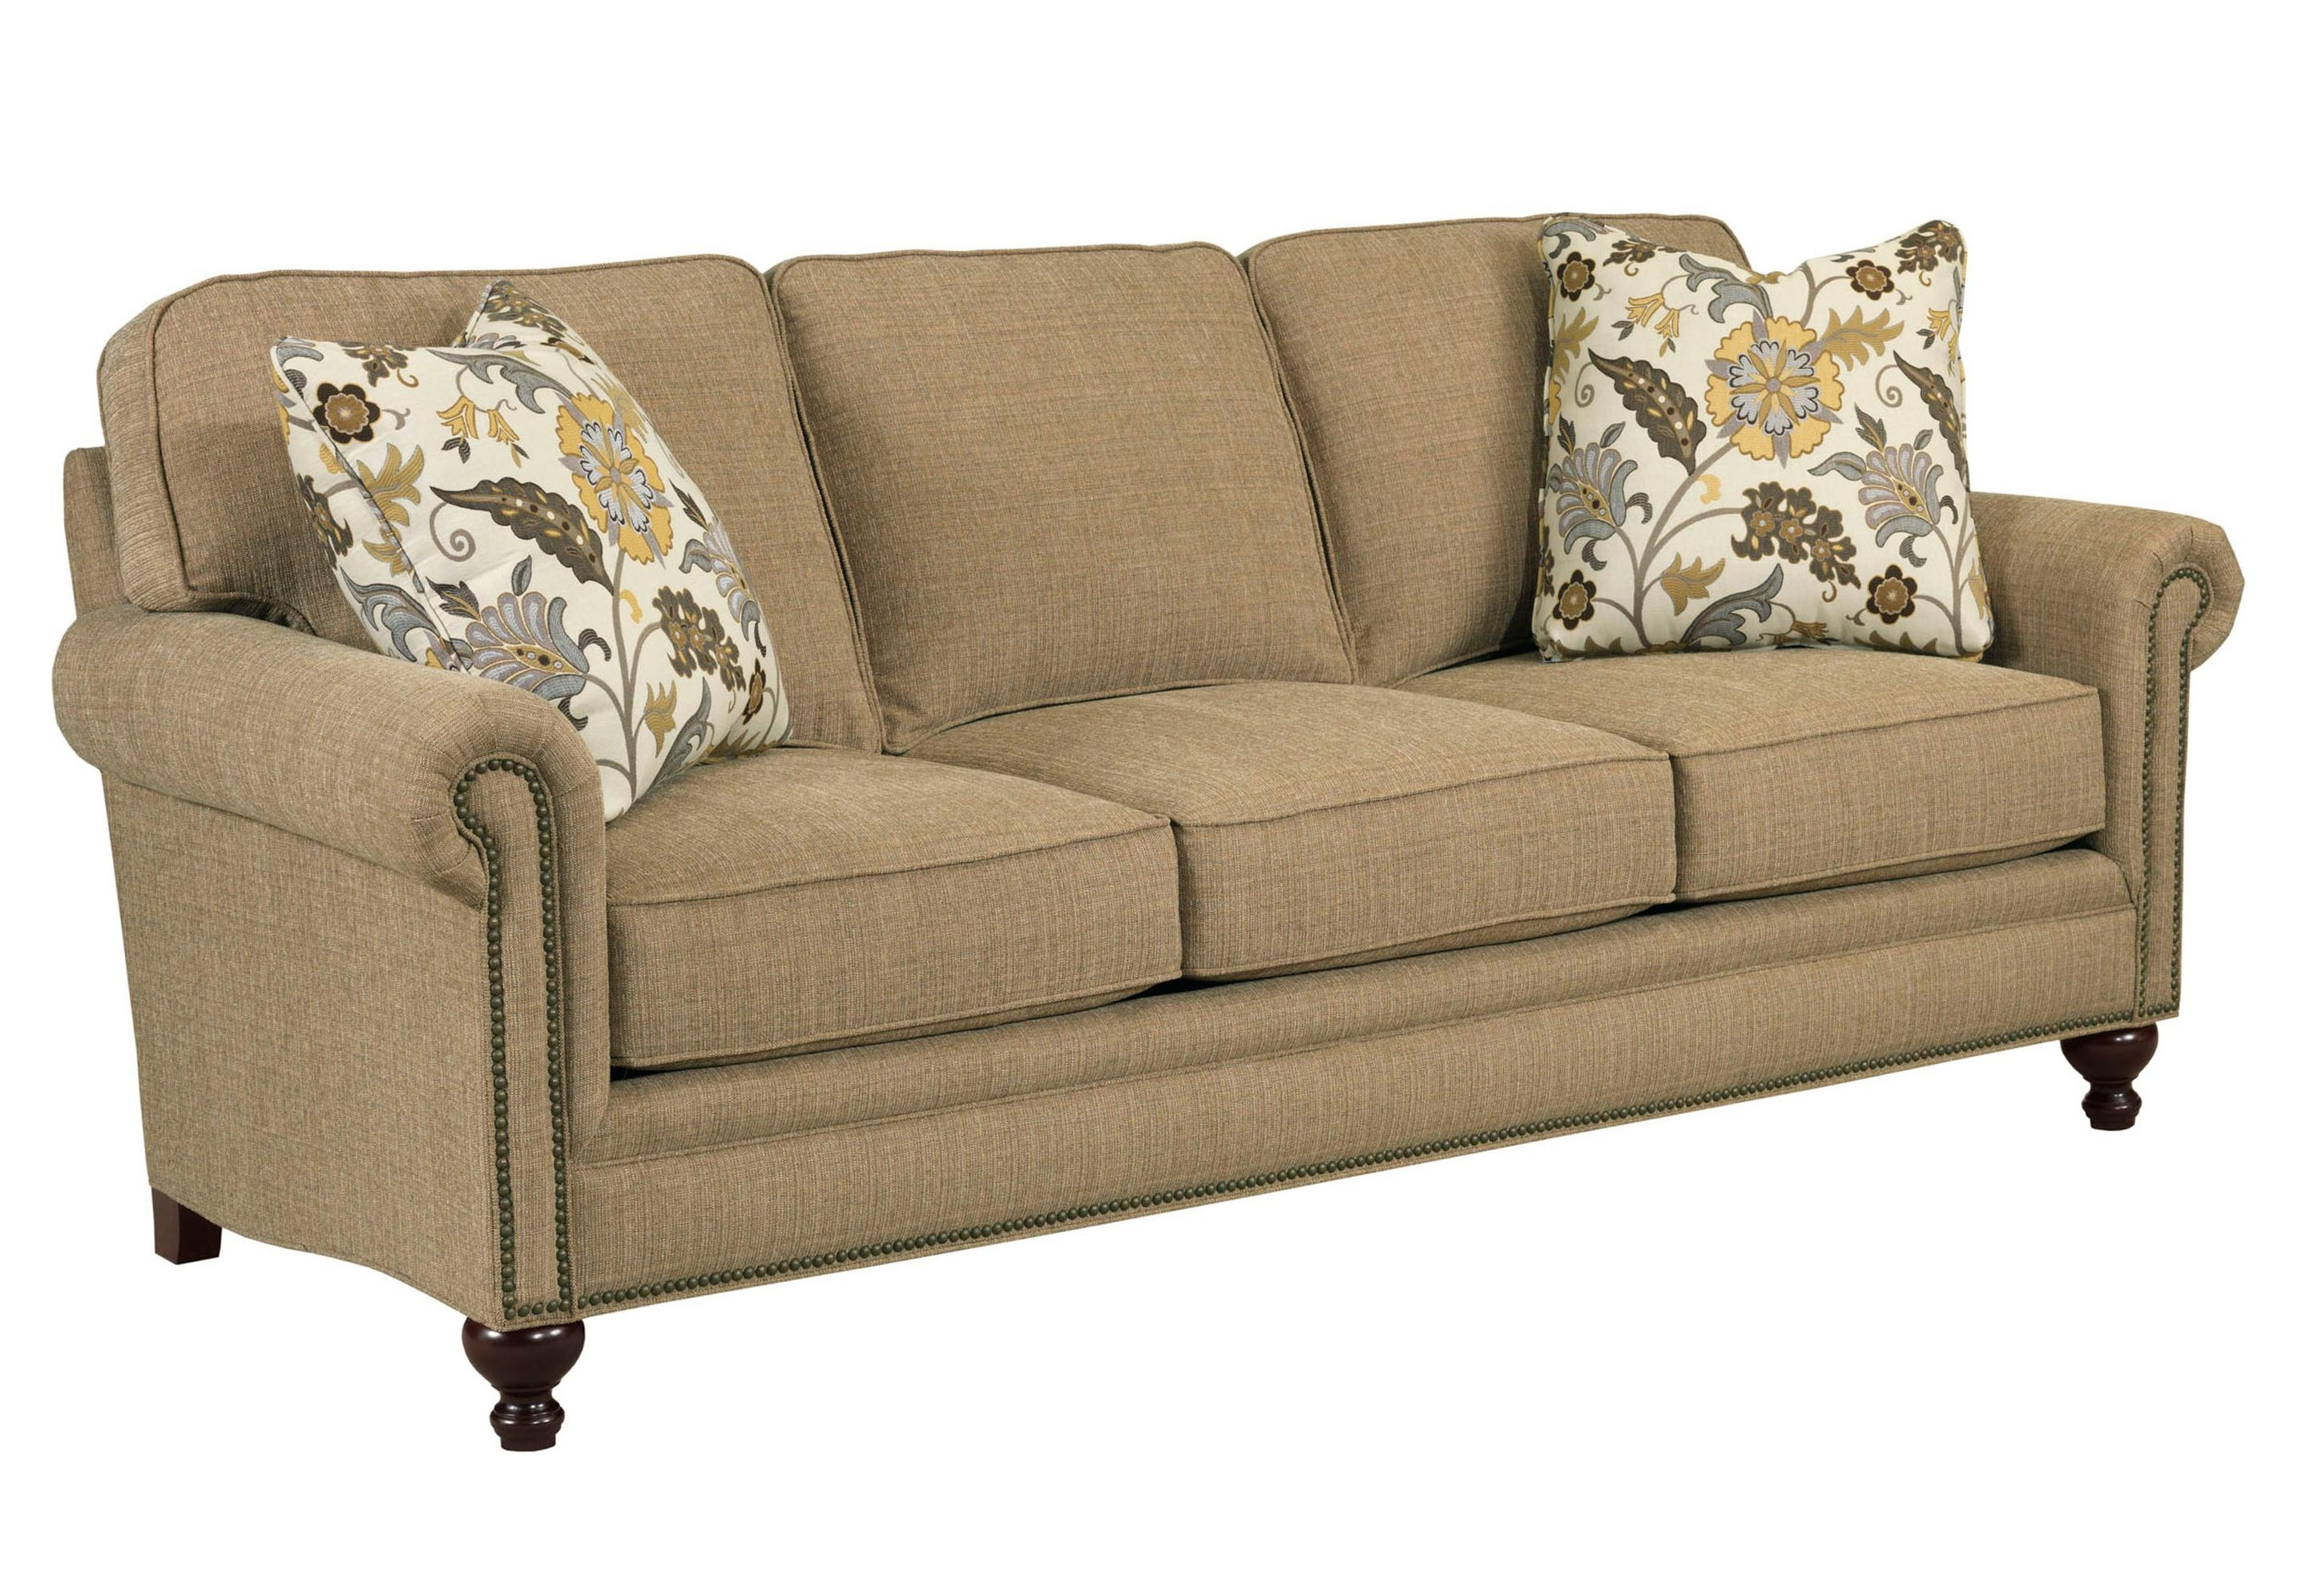 Broyhill Sofa Fabric Samples Sofas Recliners | Deseosol Throughout Broyhill Reclining Sofas (Image 11 of 20)